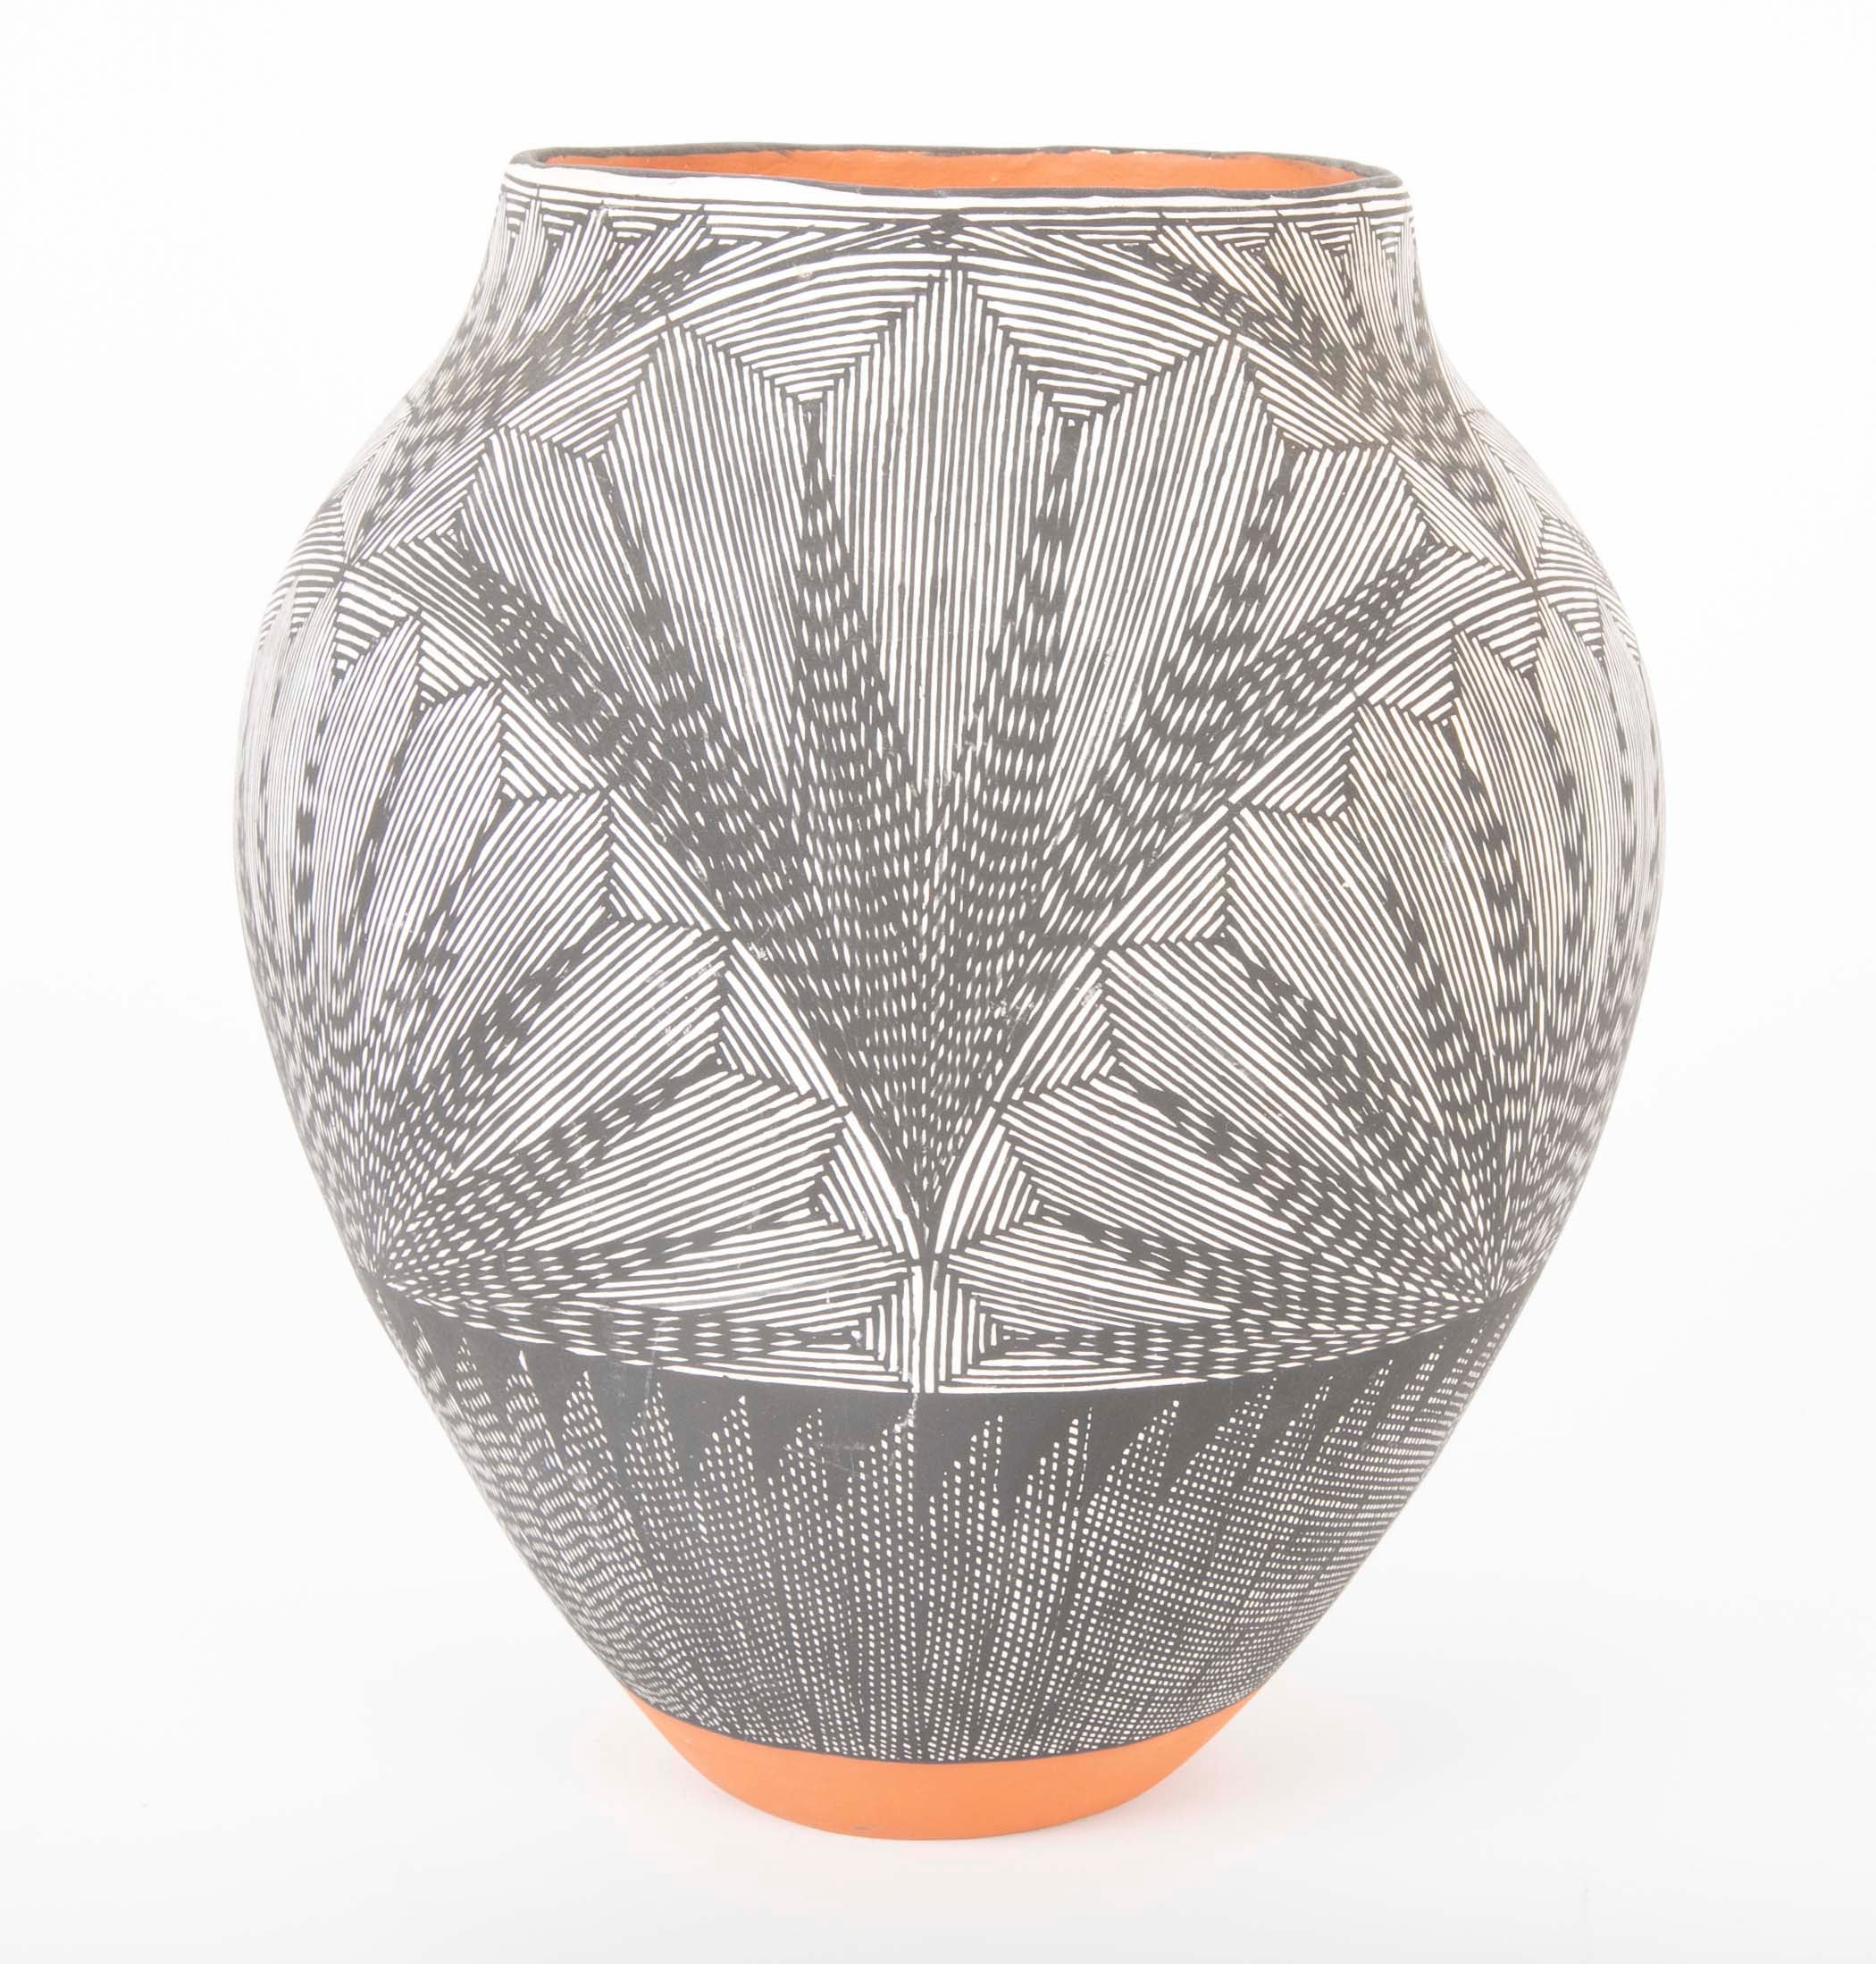 Acoma Vessel with Black and White Fine Line Design